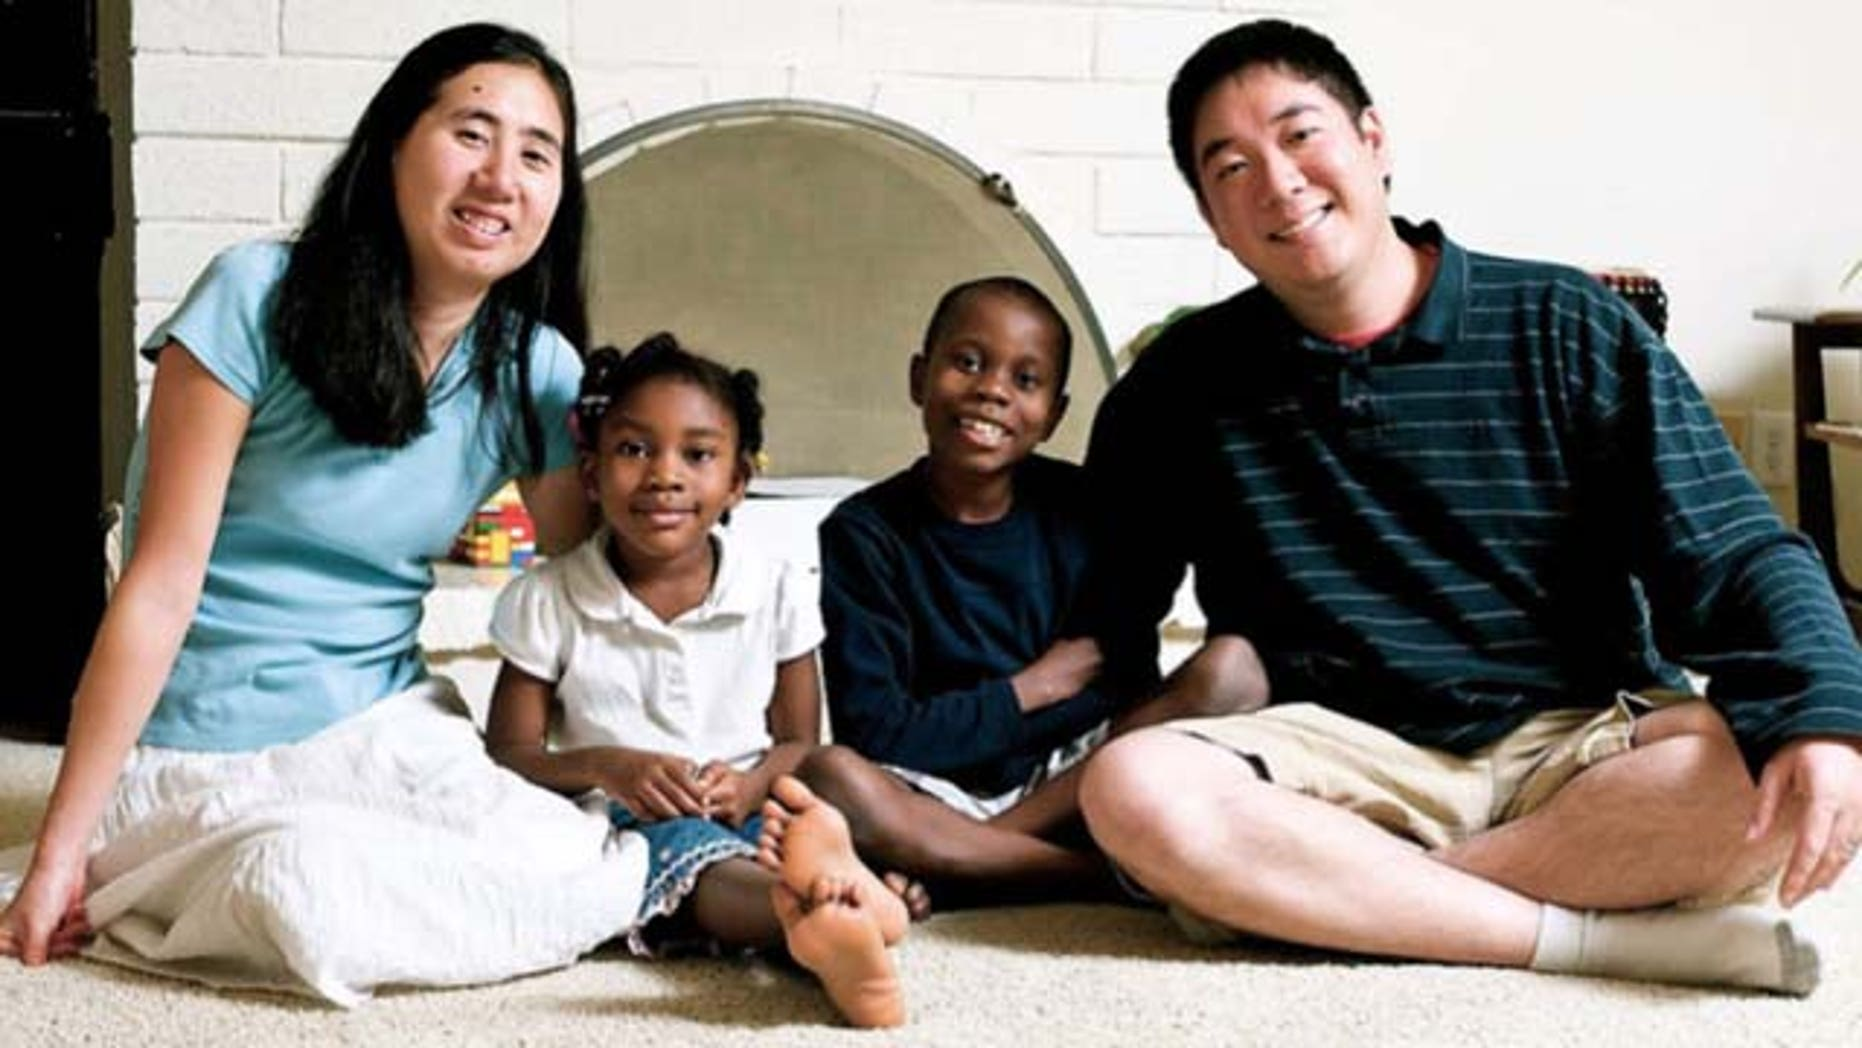 This undated photo provided by the David House Agency shows Matthew, right, and Grace Huang, left, with two of their adopted children, Gloria, center left, and one of their two sons. The couple has been jailed in Qatar on a charge of murder with intent and is accused of starving Gloria, 8, to death, according to a coalition of legal and public relations groups that are working on the case from the U.S. and trying to draw publicity to what they claim is are unjust arrests. (AP Photo/